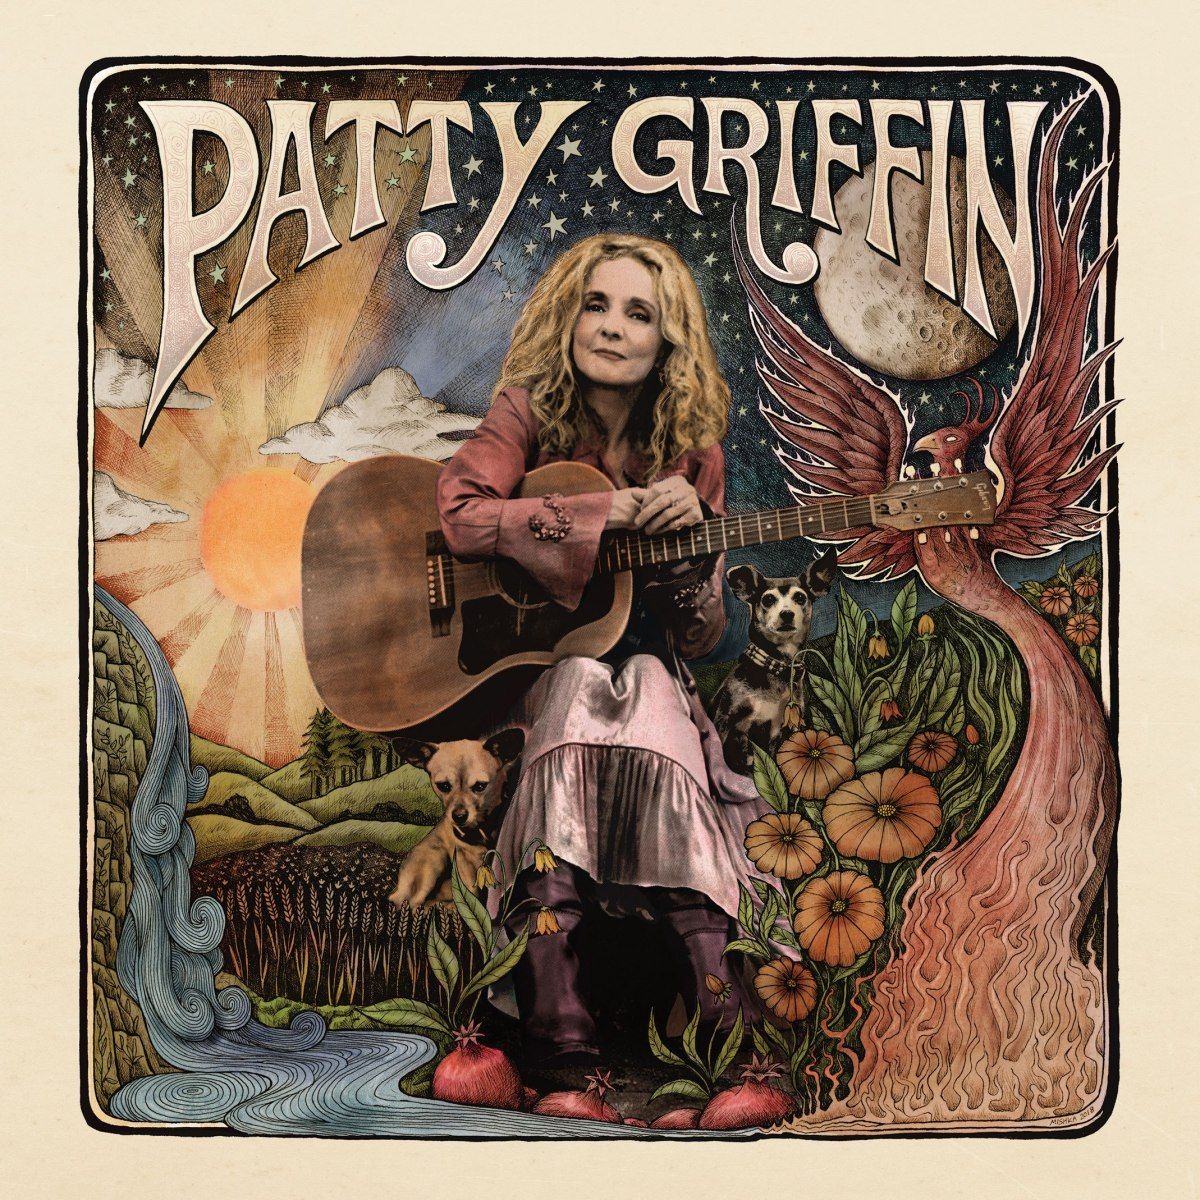 Patty Griffin's New Album On The Way